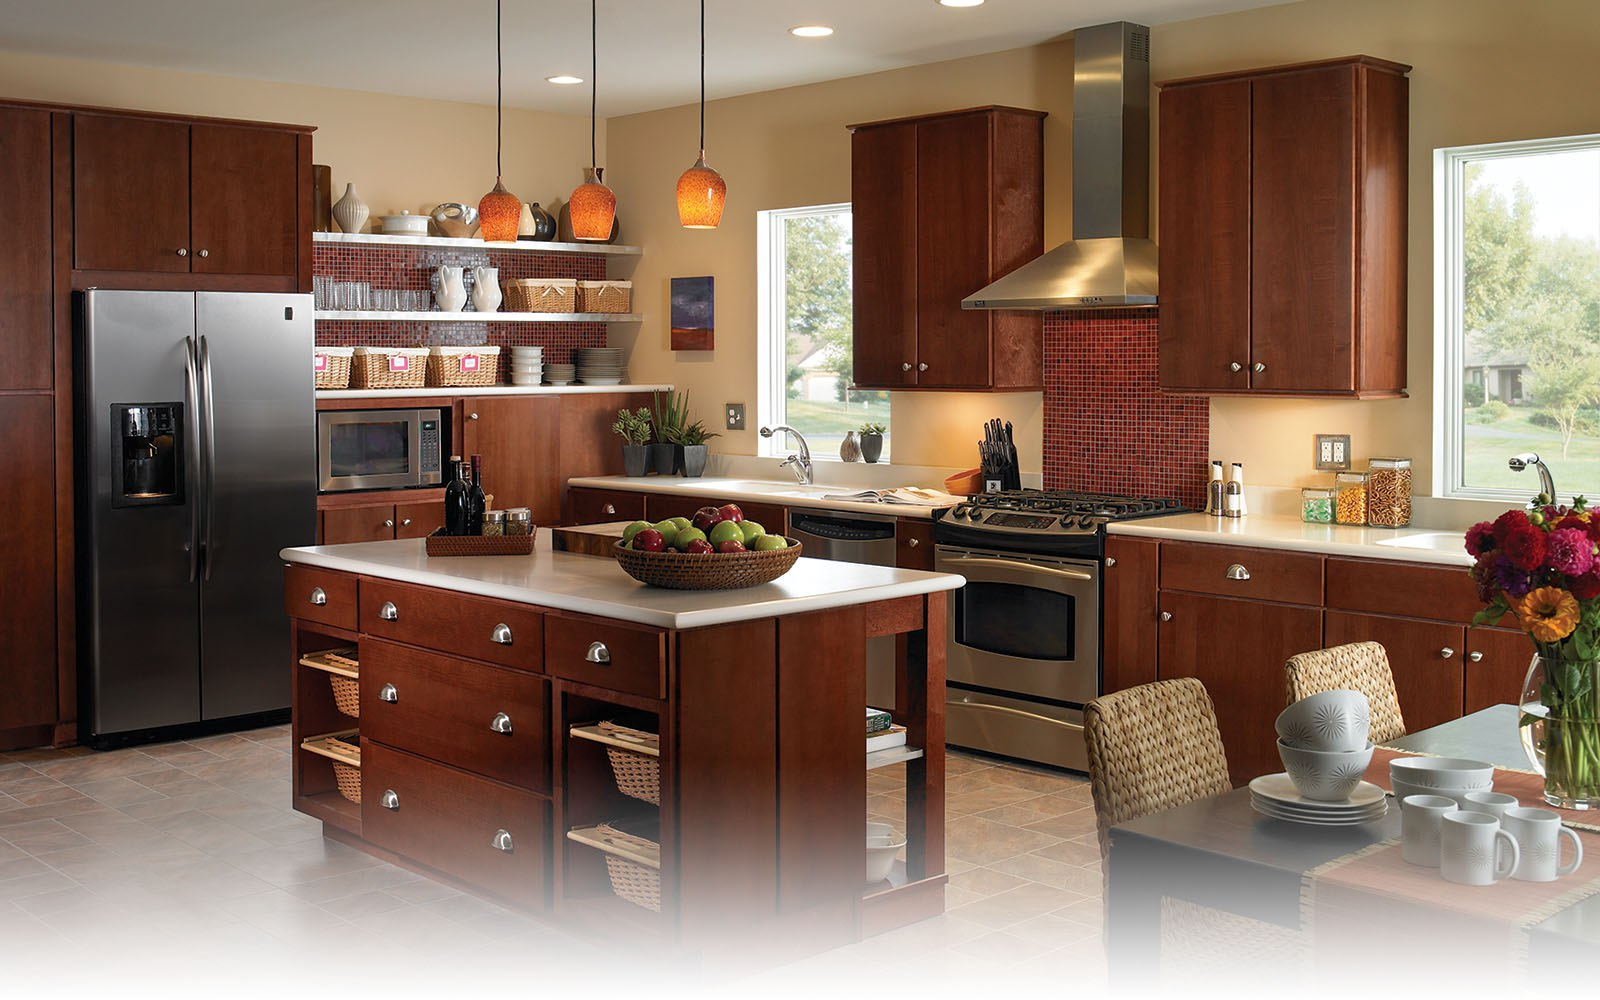 Kitchen Remodeling And Design kitchen and bath cabinets, design and remodeling - norfolk kitchen